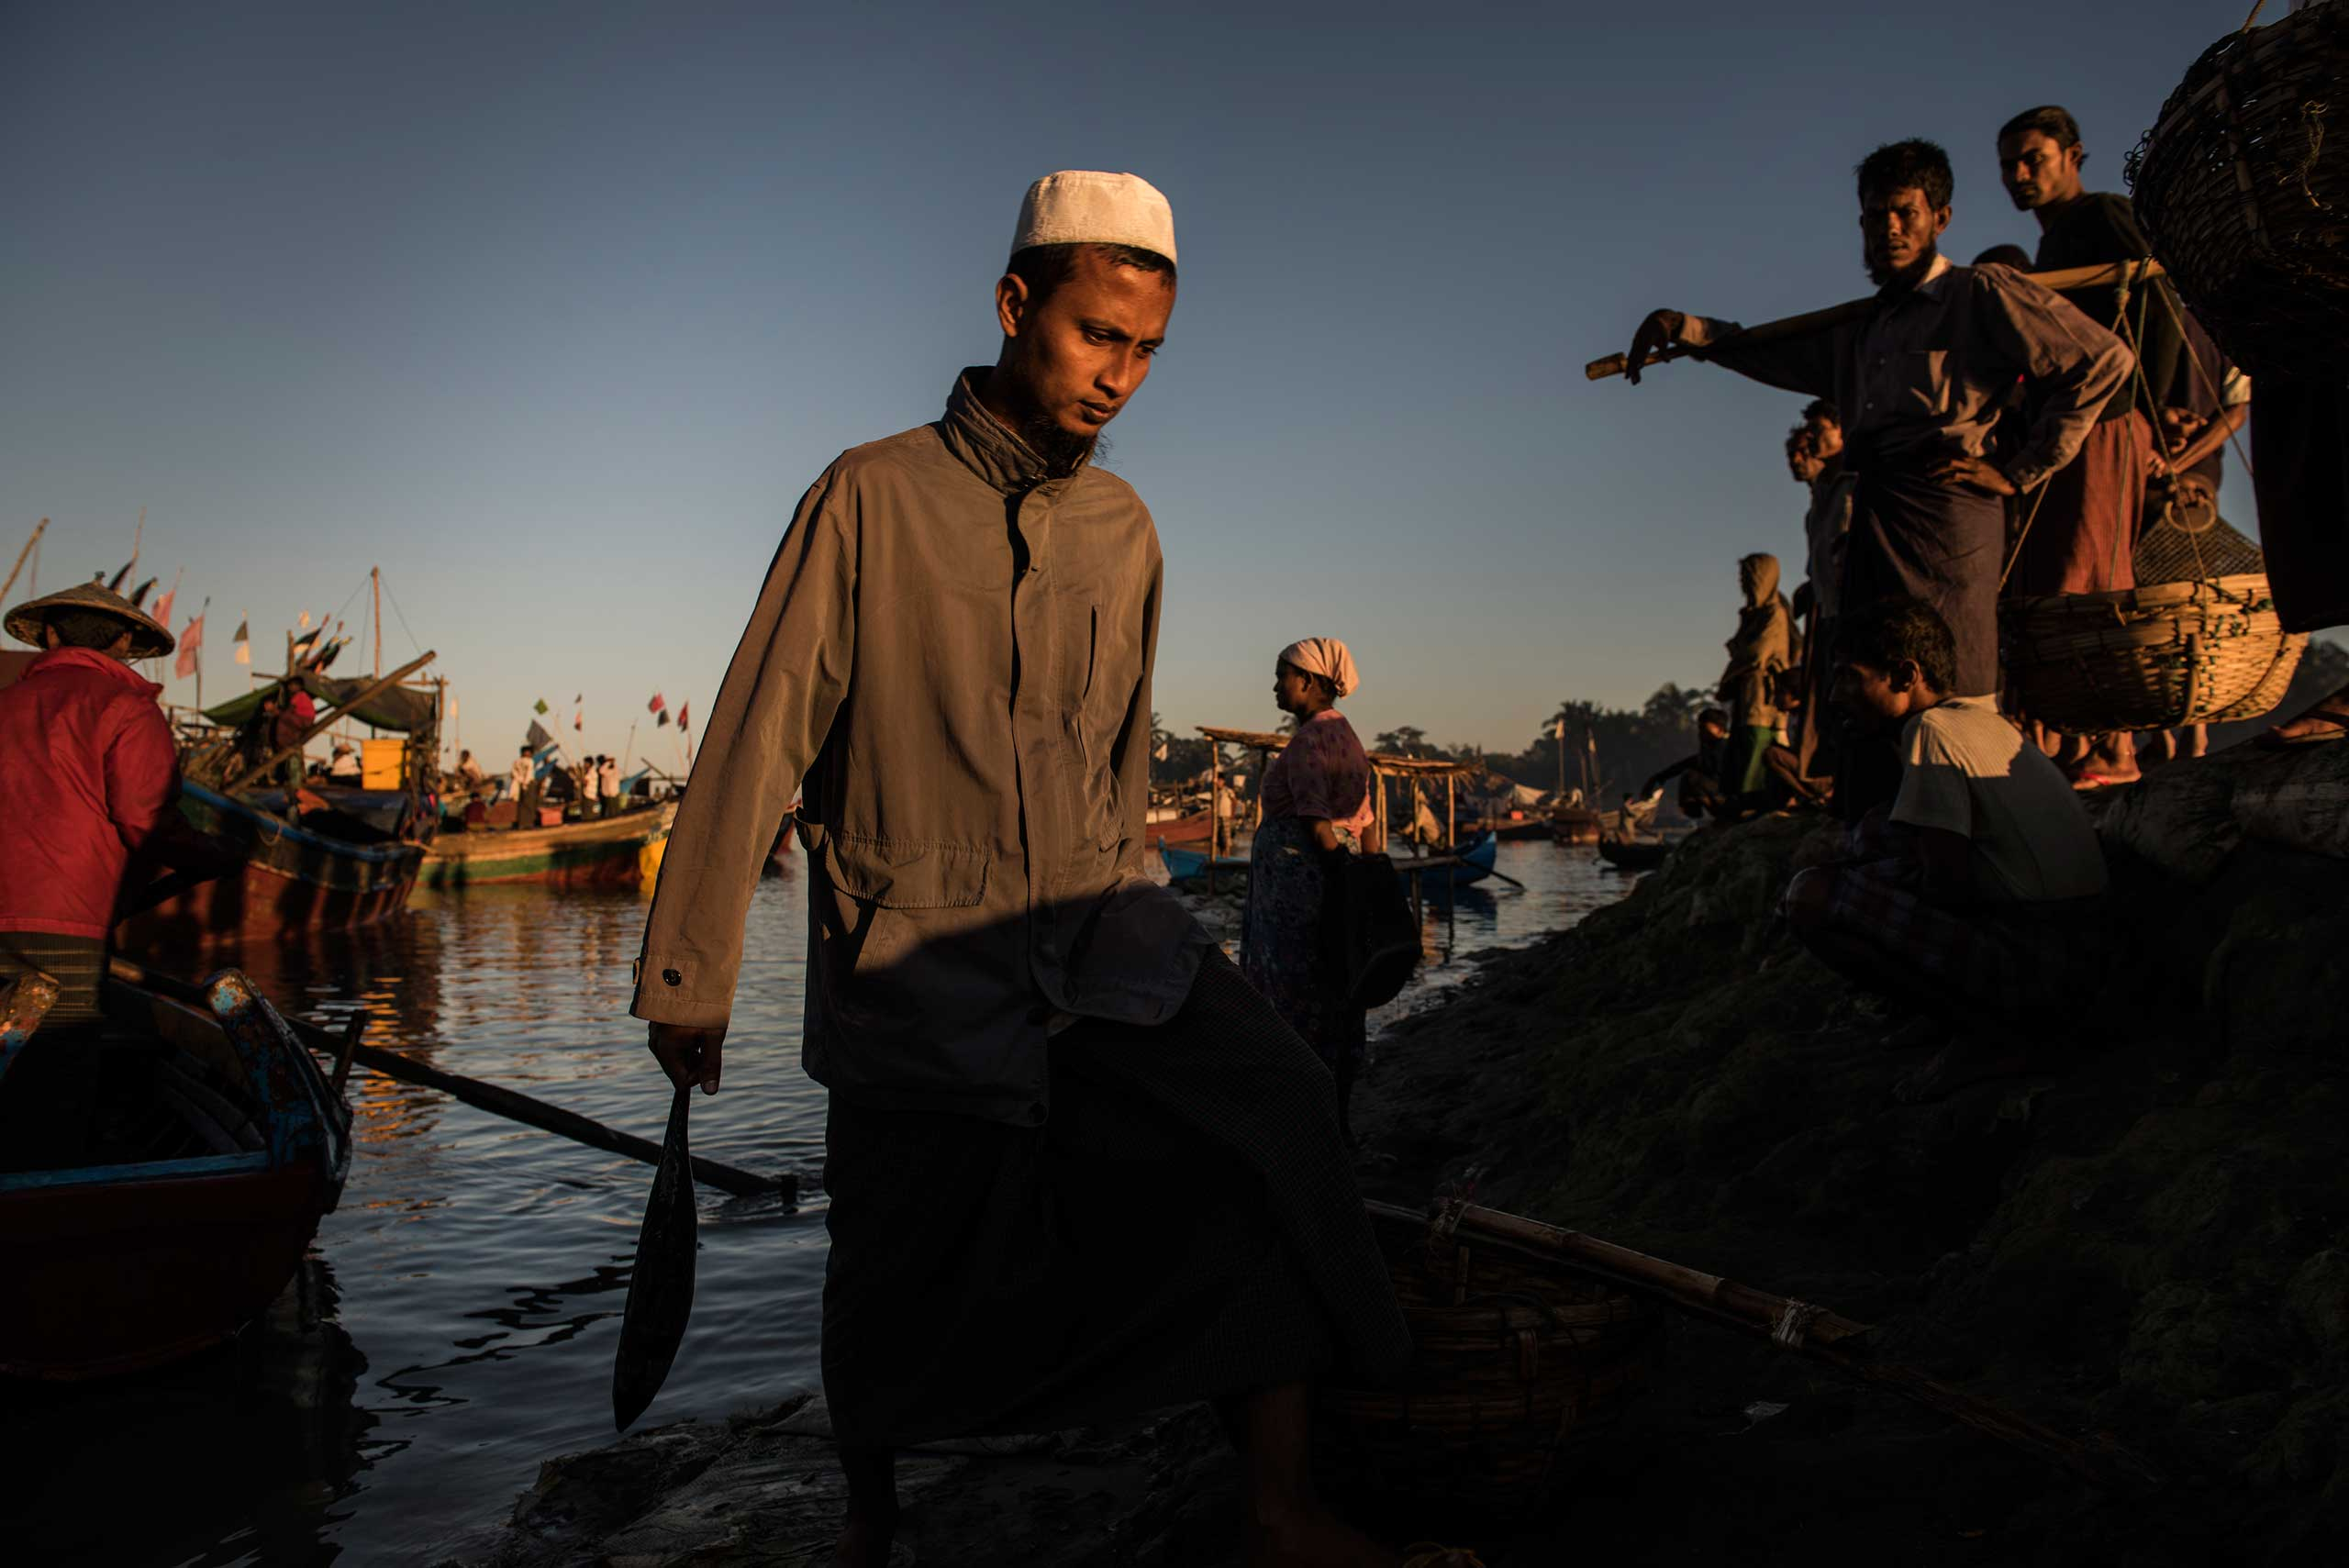 Rohingya fishermen arrive with fresh fish at the Thay Chaung fishing port in the Thay Chaung camp for internally displaced near Sittwe, in Myanmar, Nov. 24, 2015.  Every morning, dozens of fishermen arrive at the port after having been at sea from anywhere from a few hours to several days. Fishing is one of the main means for the Rohingya to support themselves and their families.